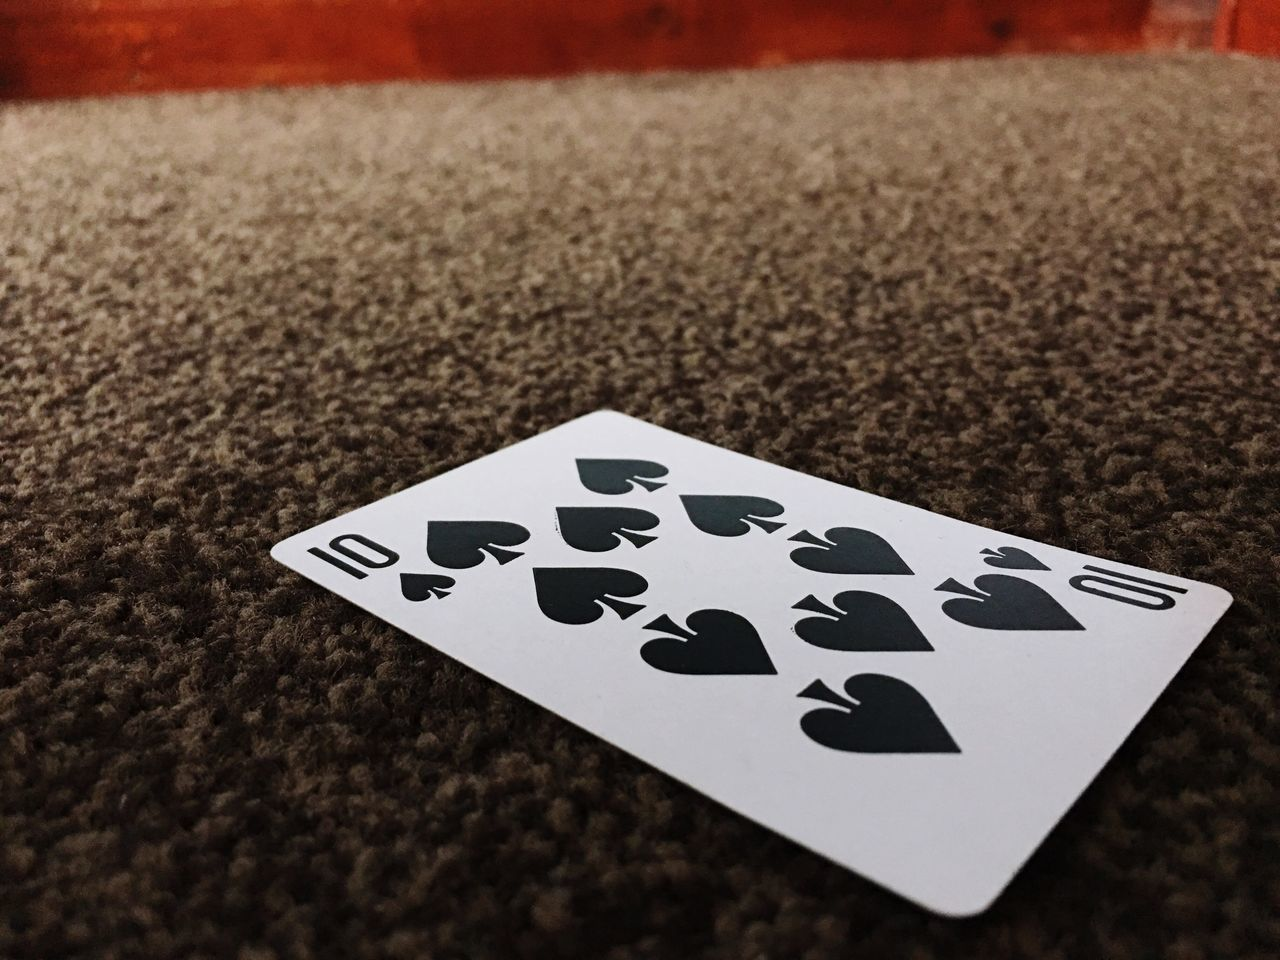 Cards Hearts Gambling Close-up Luck Chance Indoors  No People Day Leisure Games Casino Carpet Brown